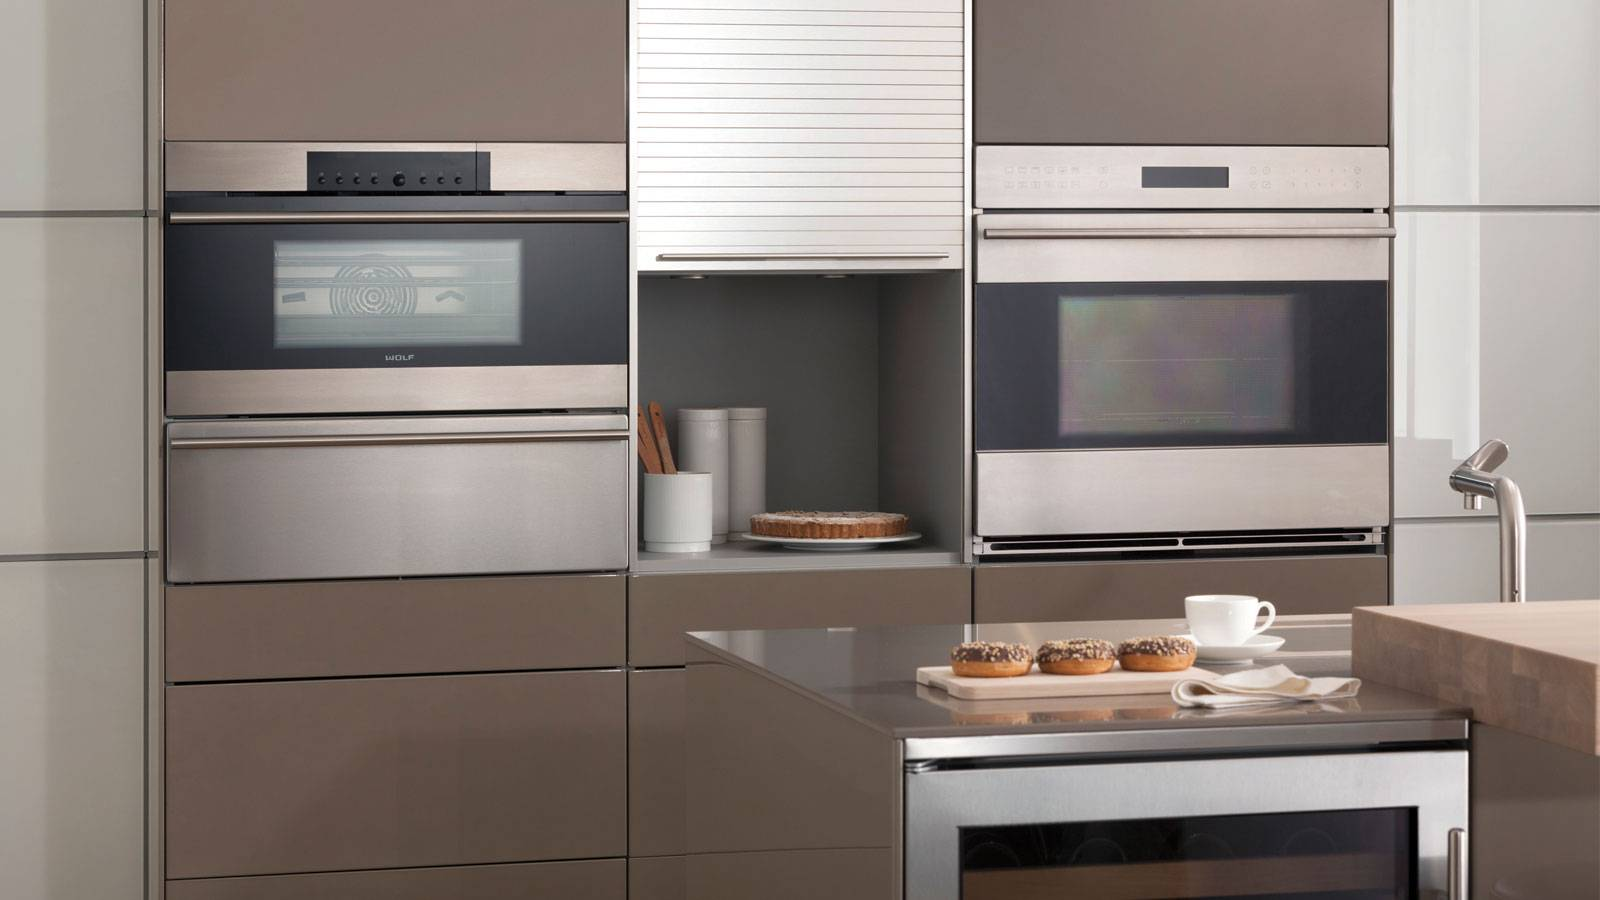 design appliances